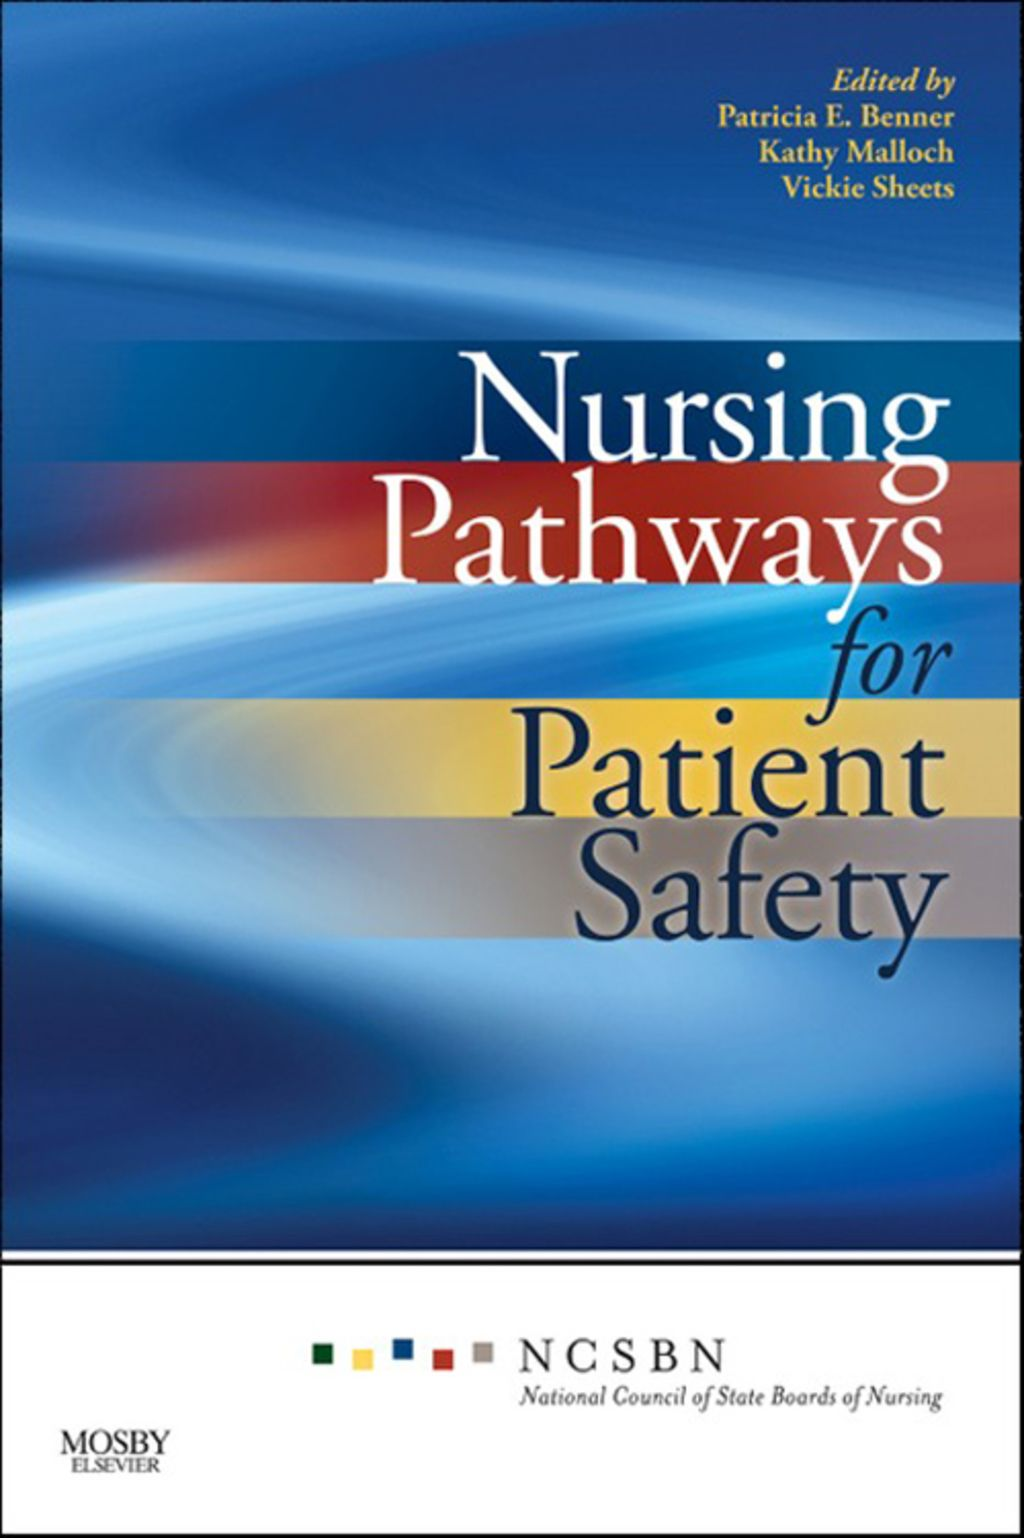 Nursing Pathways for Patient Safety (eBook) State board